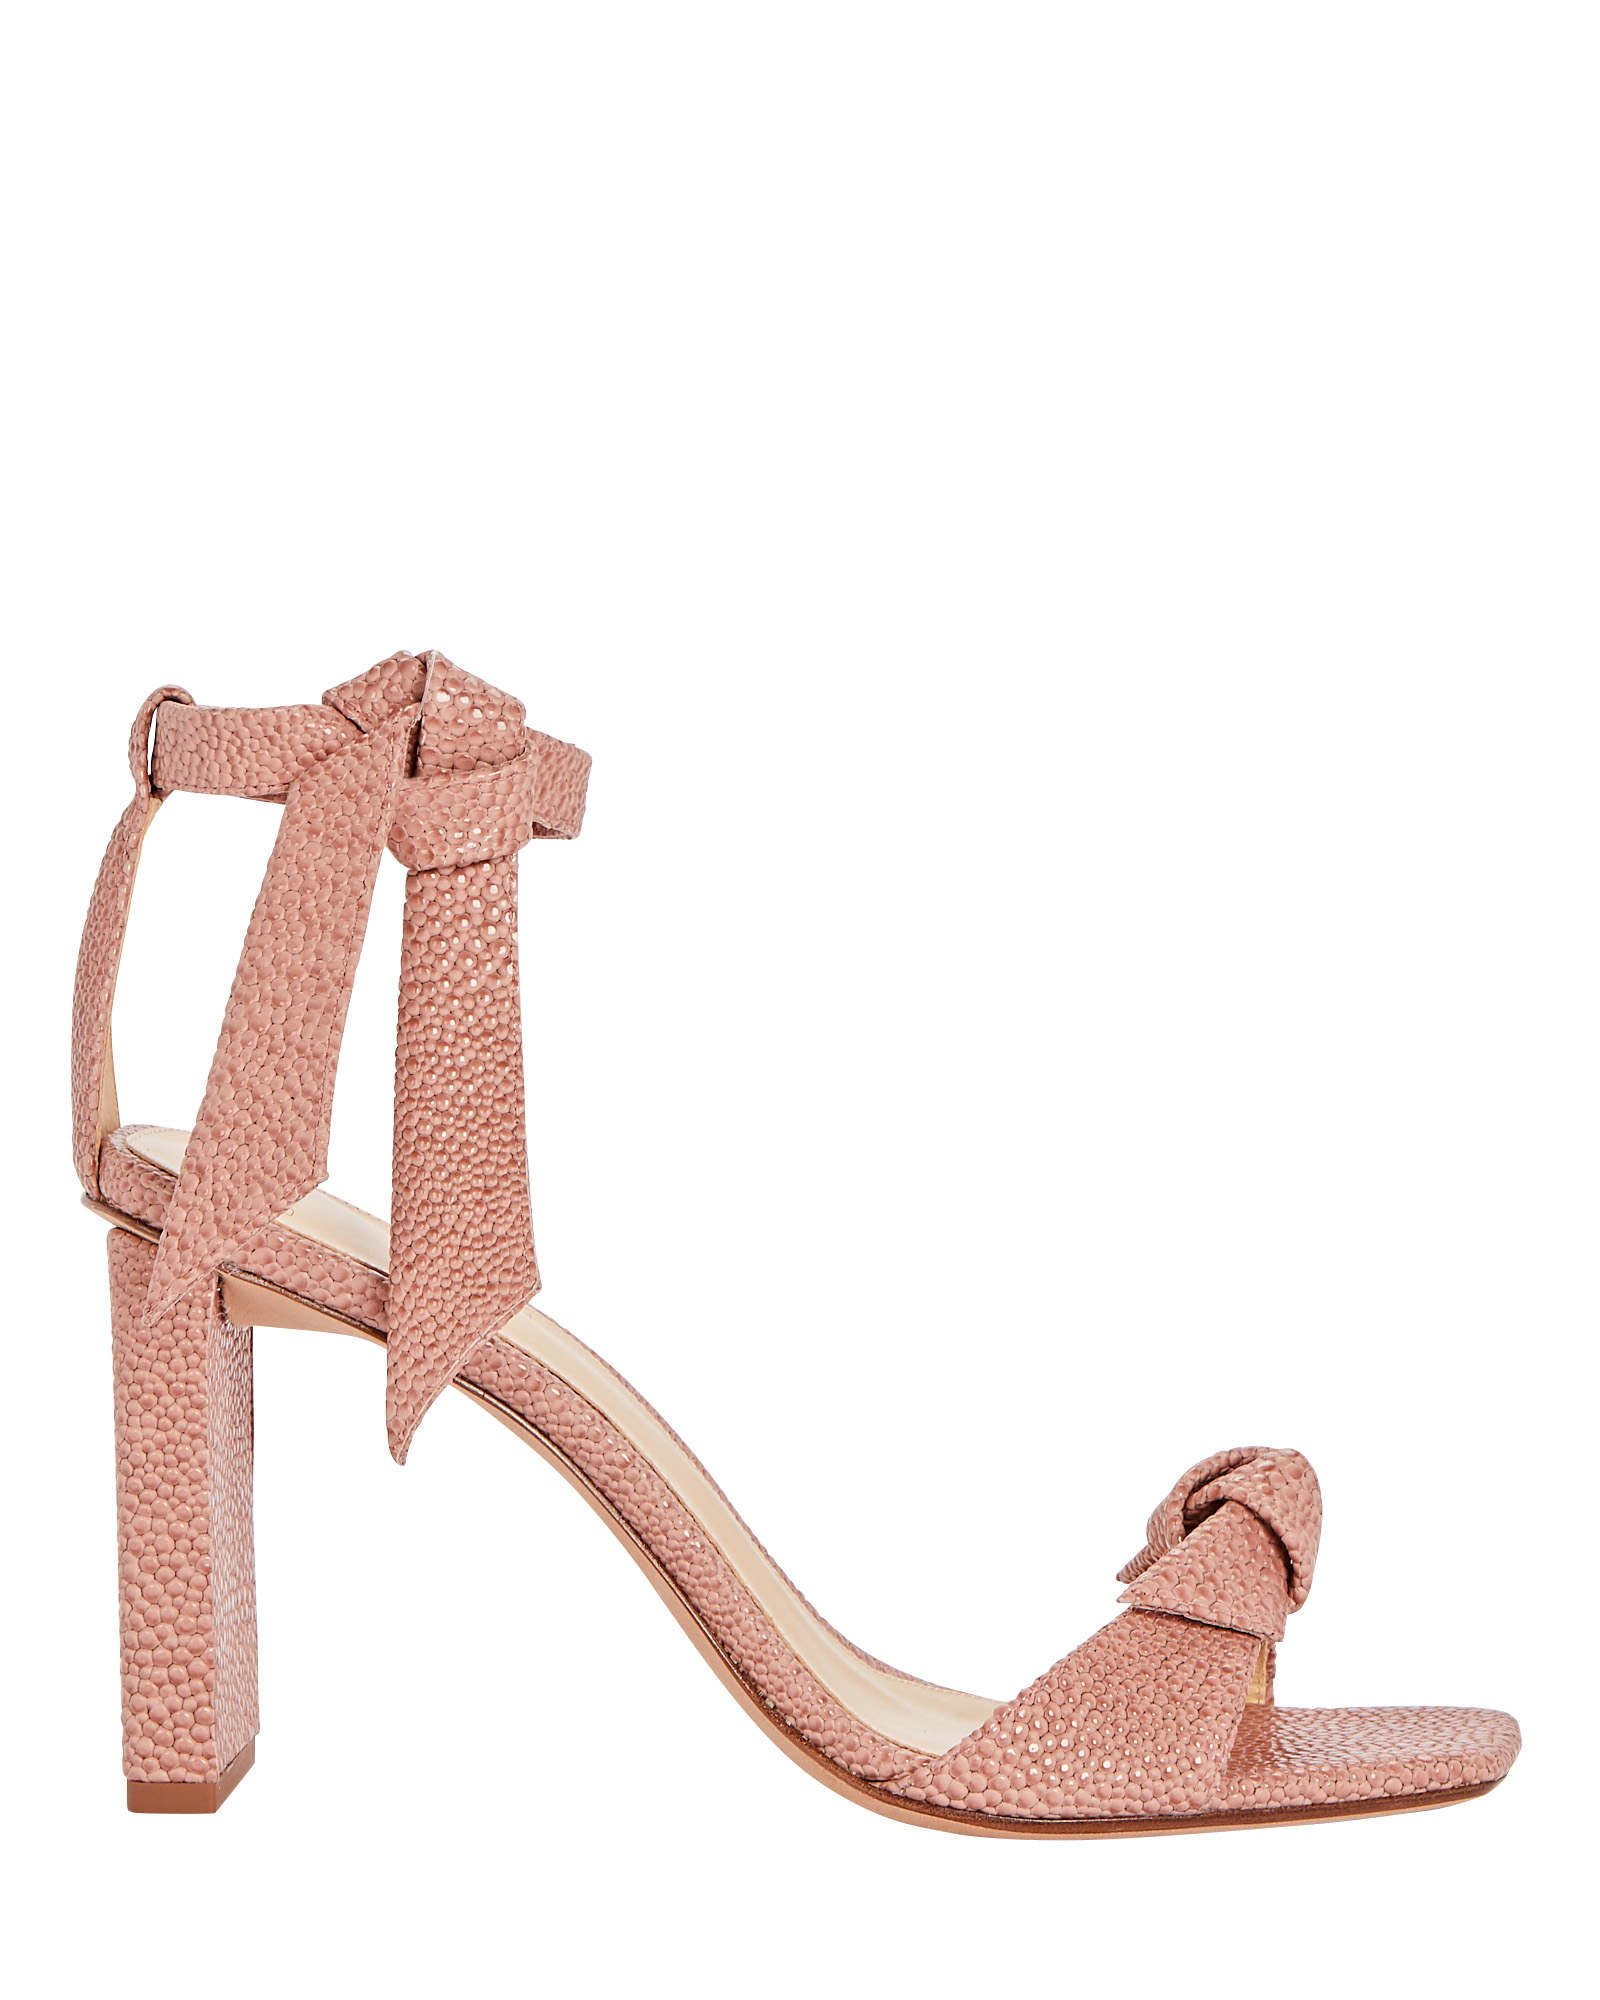 Alexandre Birman ALEXANDRE BIRMAN CLARITA 85 LEATHER SANDALS